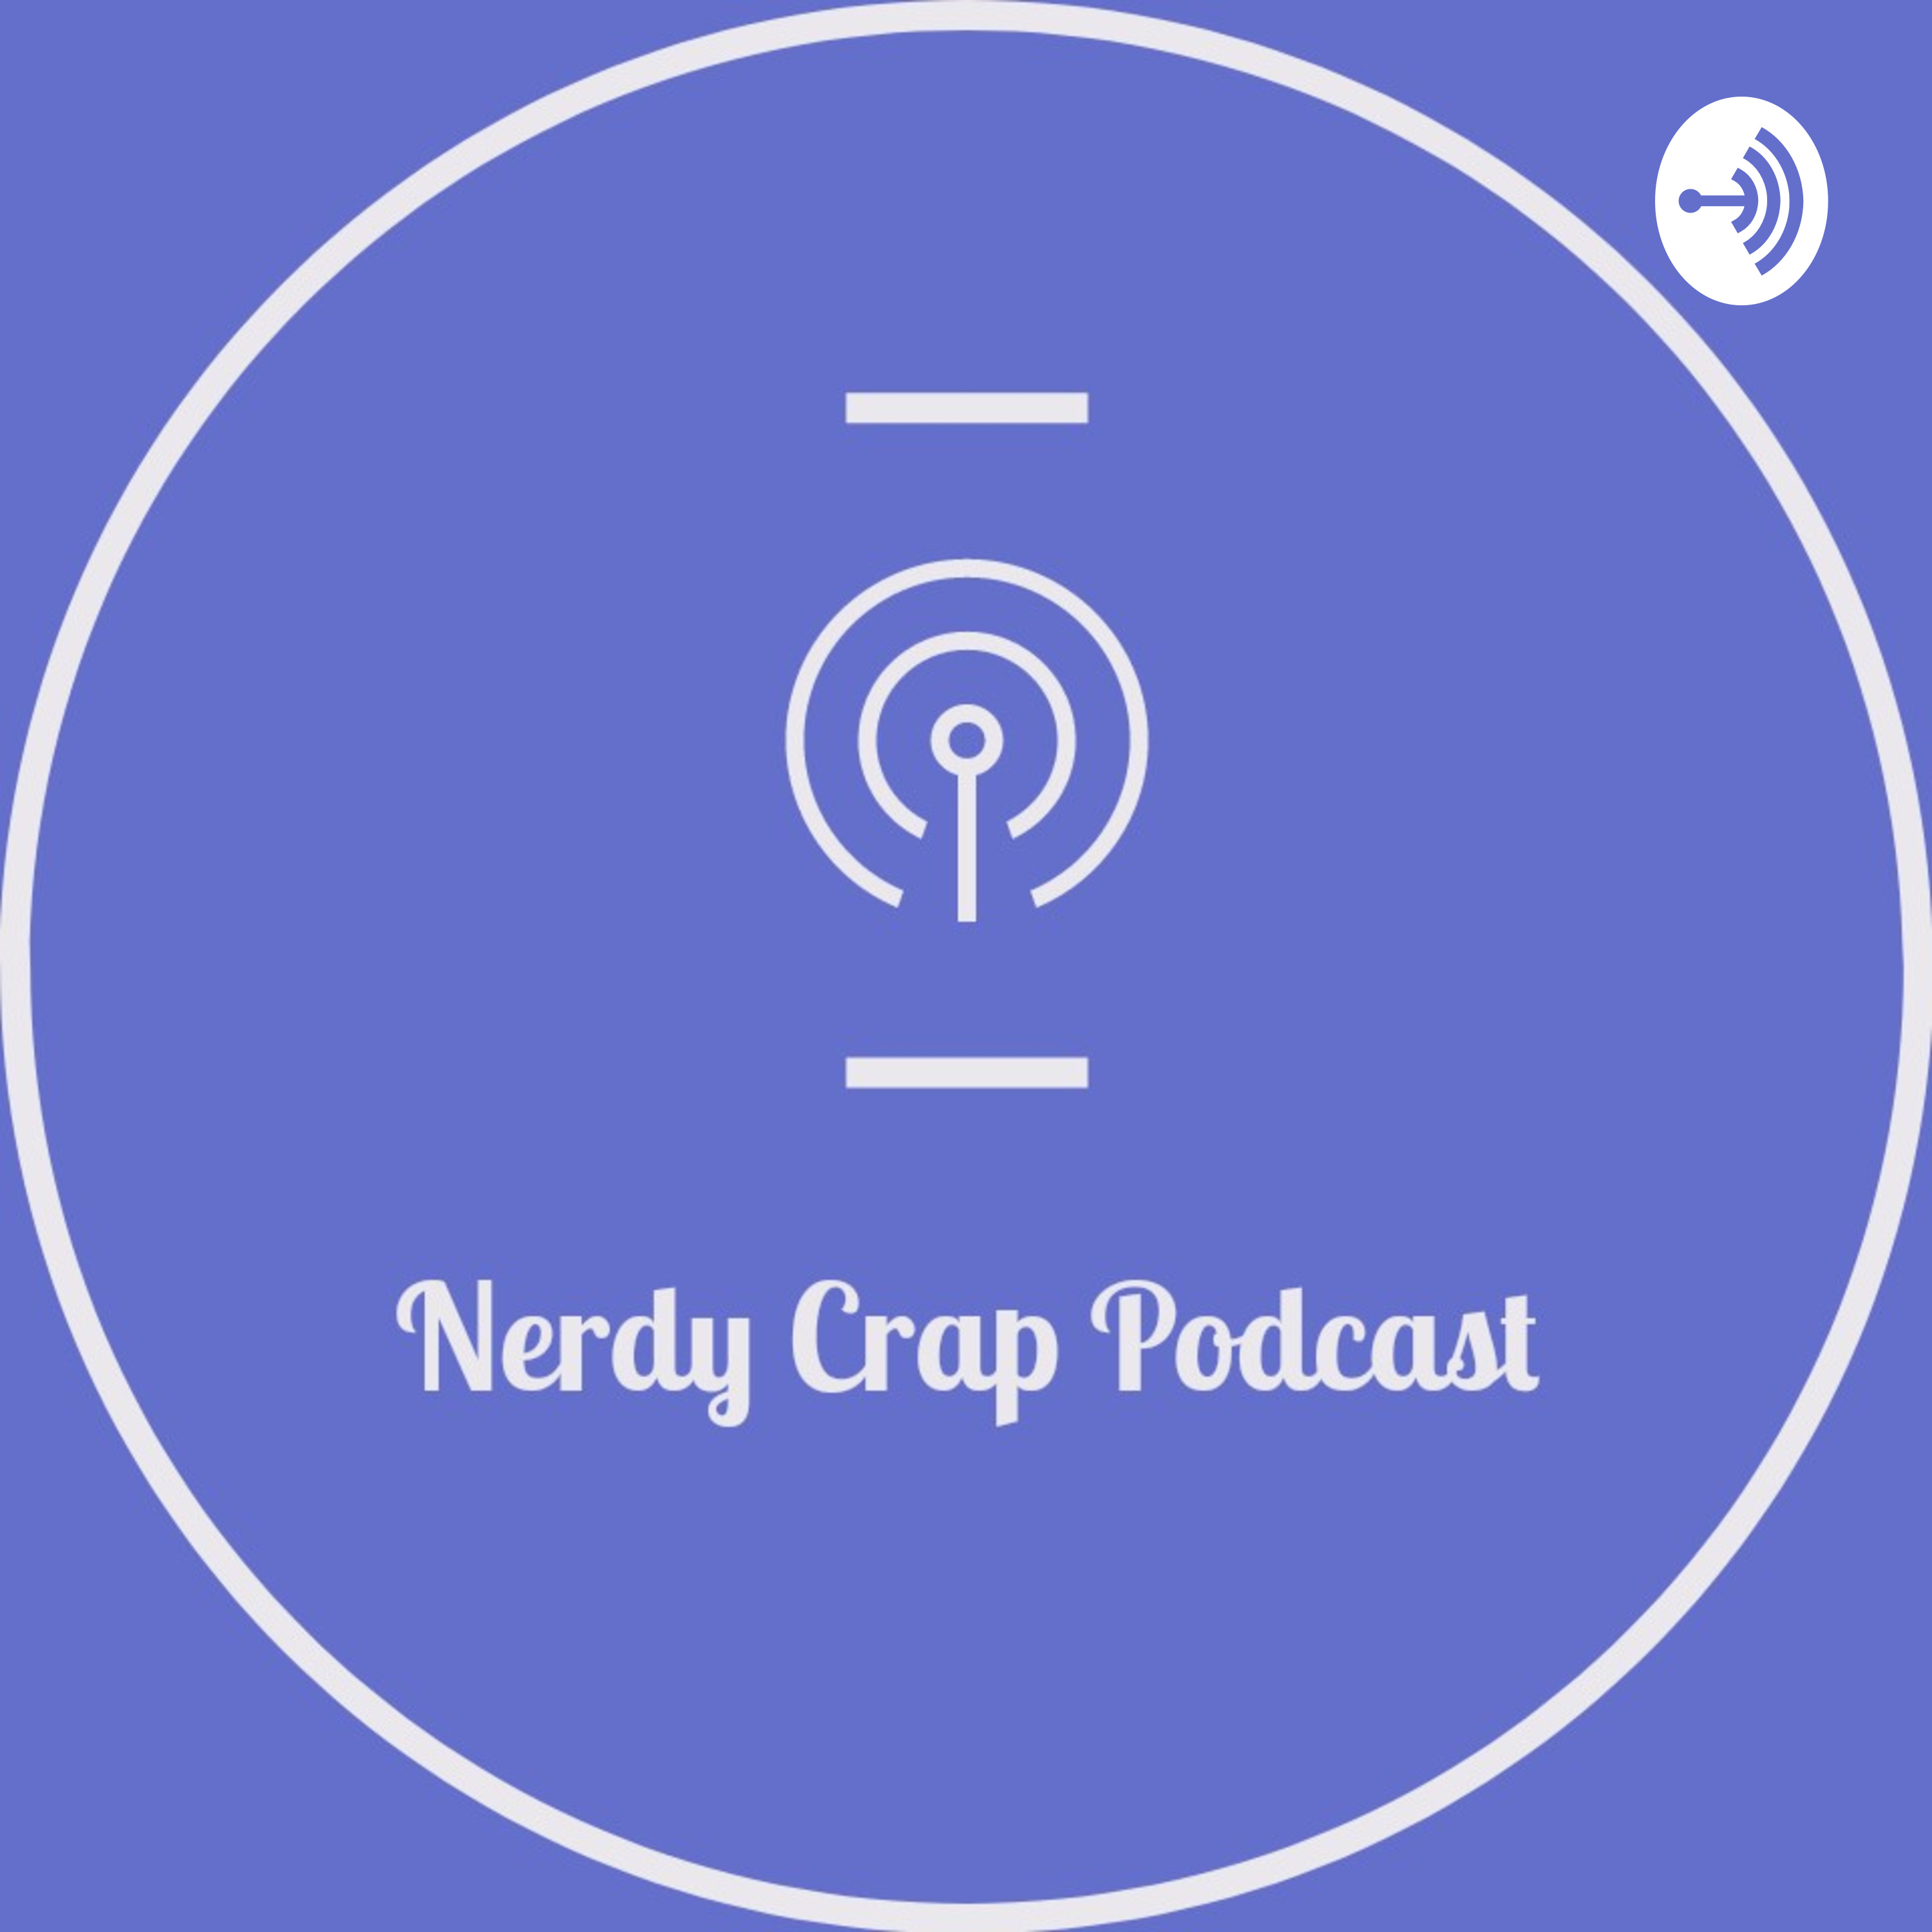 Nerdy crap podcast ep 2: getting political